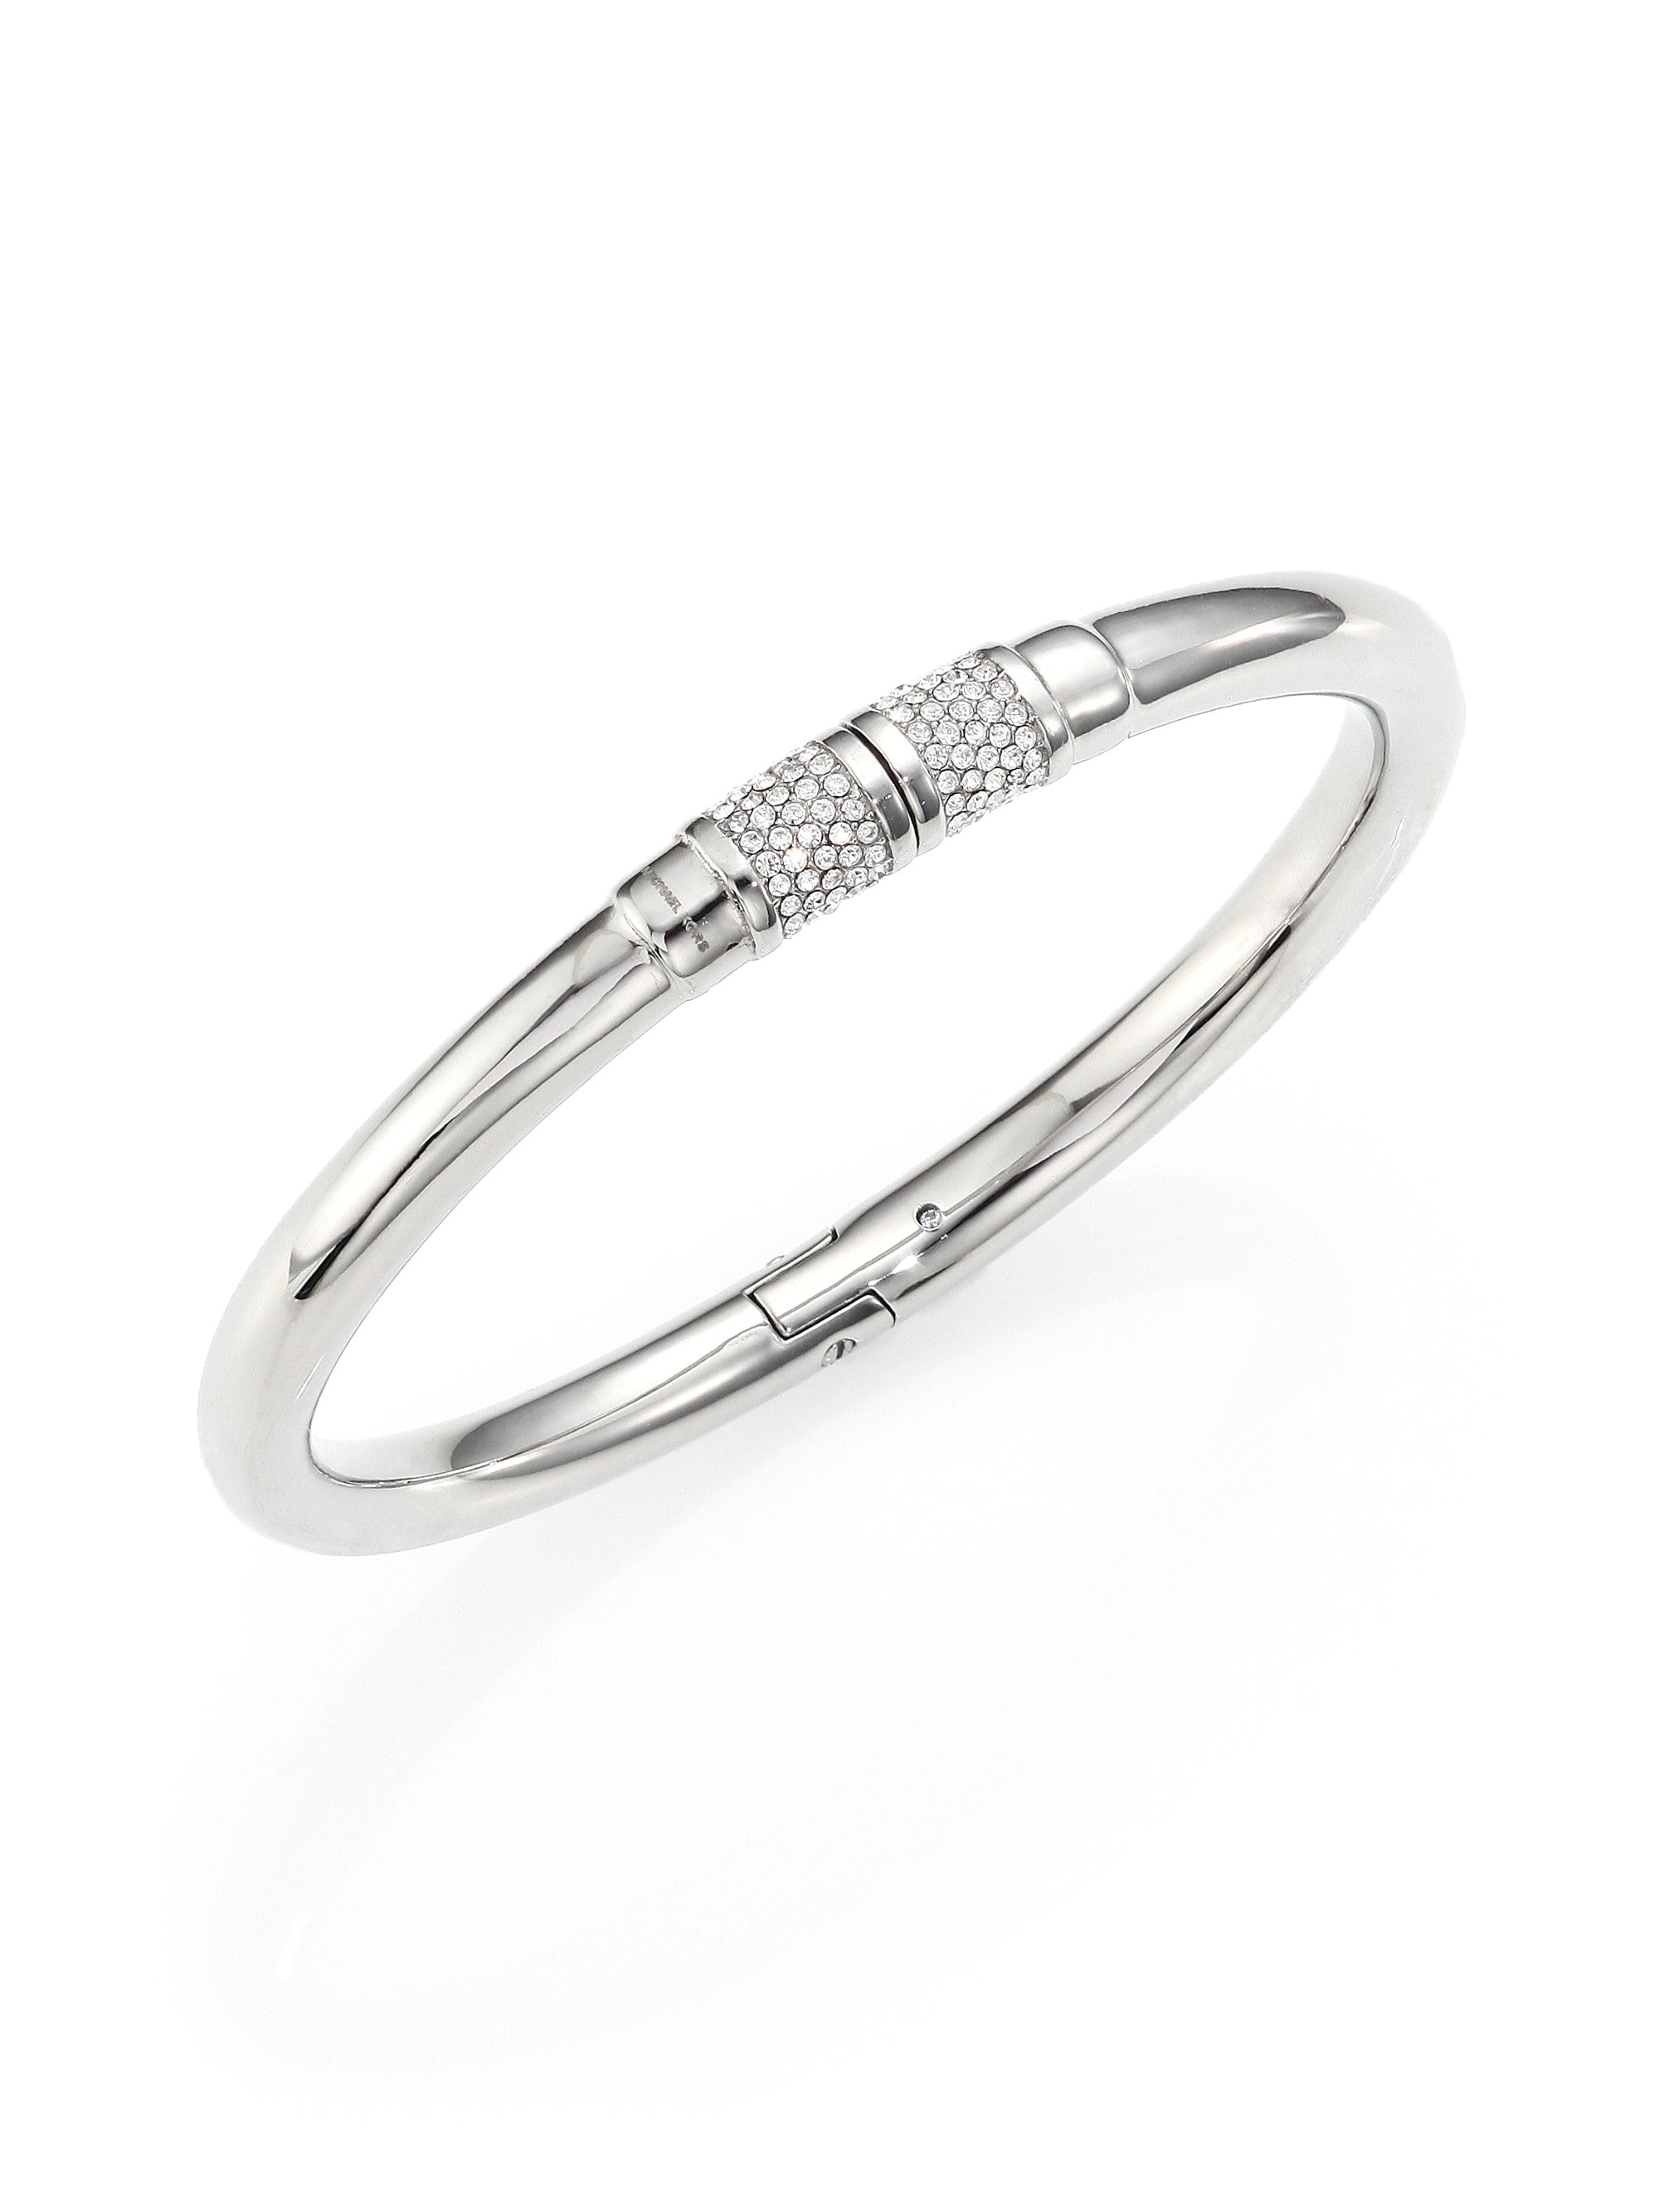 pave do new jewelry bangle bangles twist gallery lyst metallic spade in york hinged clearsilver kate the